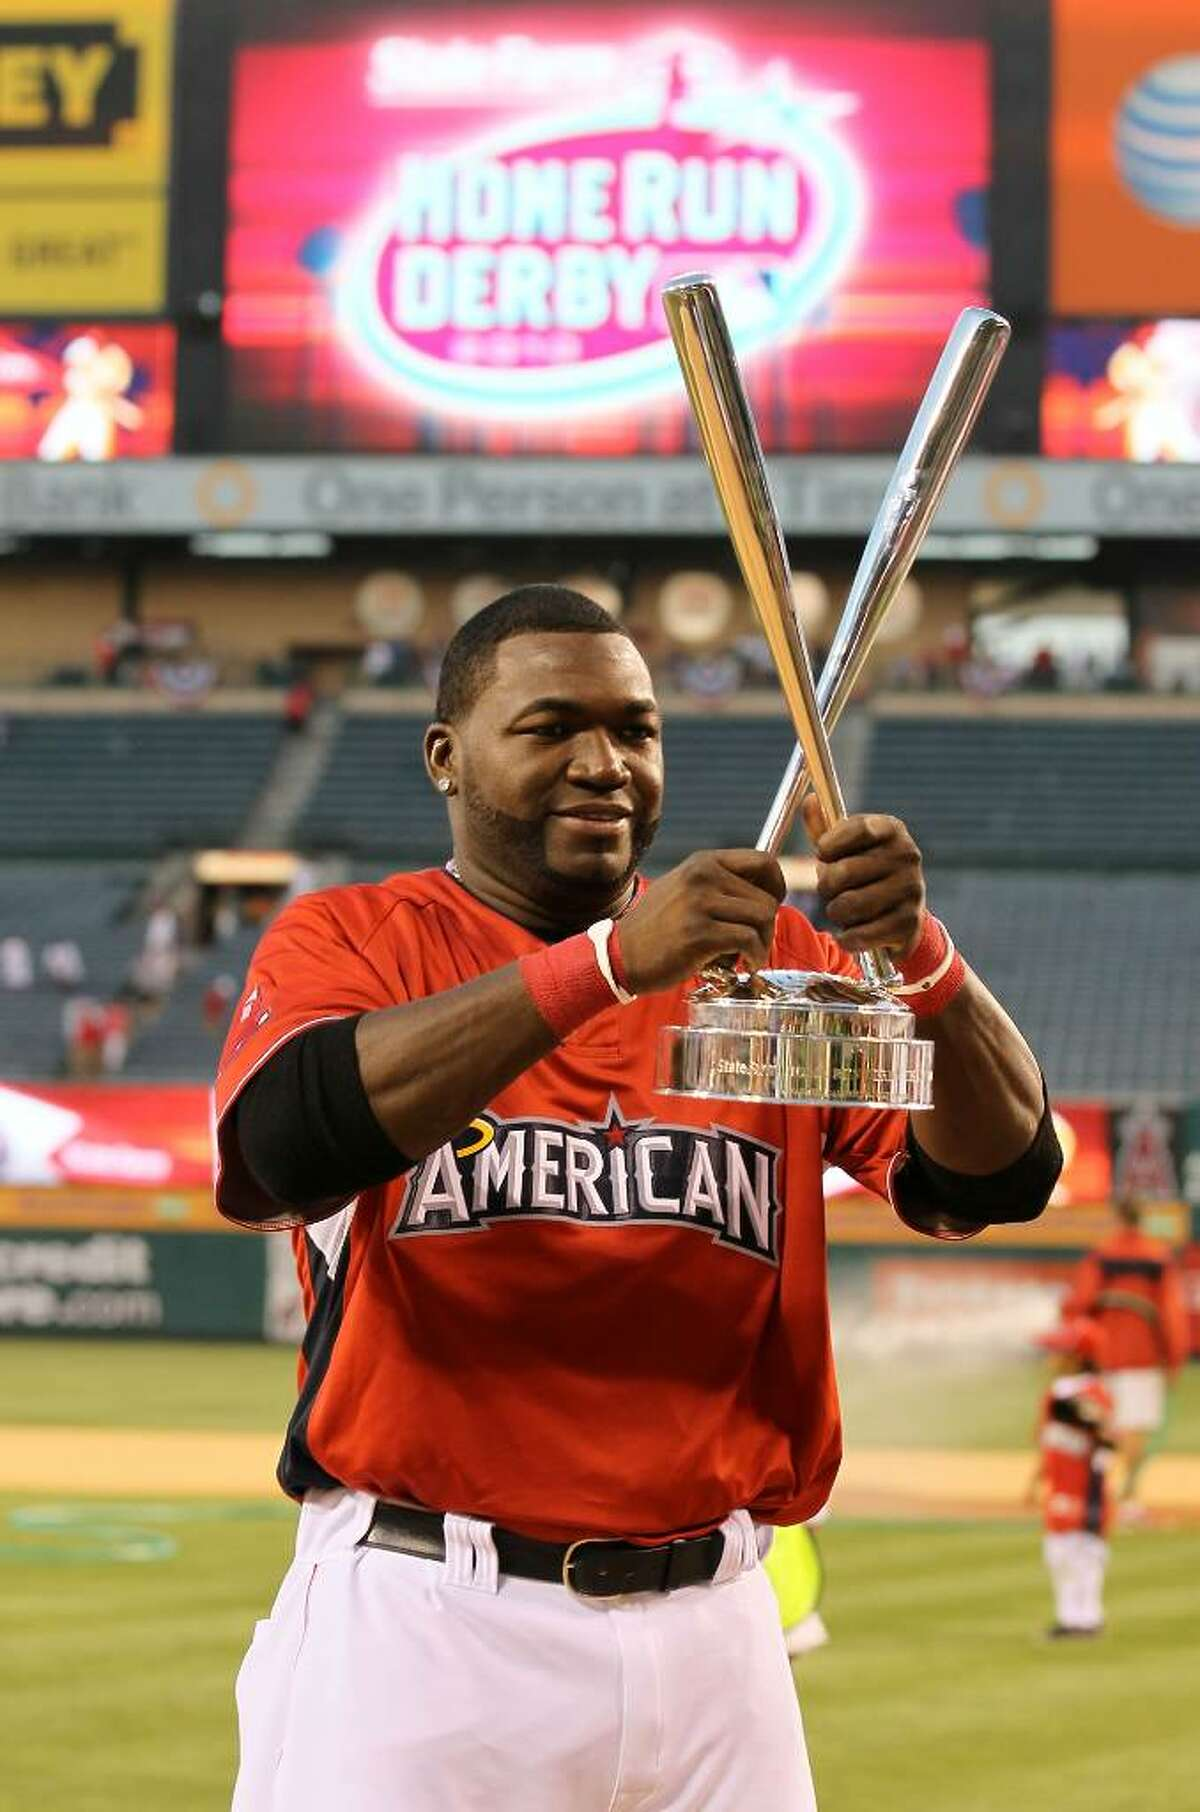 ANAHEIM, CA - JULY 12: American League All-Star David Ortiz #34 of the Boston Red Sox winner of the 2010 State Farm Home Run Derby during All-Star Weekend at Angel Stadium of Anaheim on July 12, 2010 in Anaheim, California. (Photo by Stephen Dunn/Getty Images) *** Local Caption *** David Ortiz